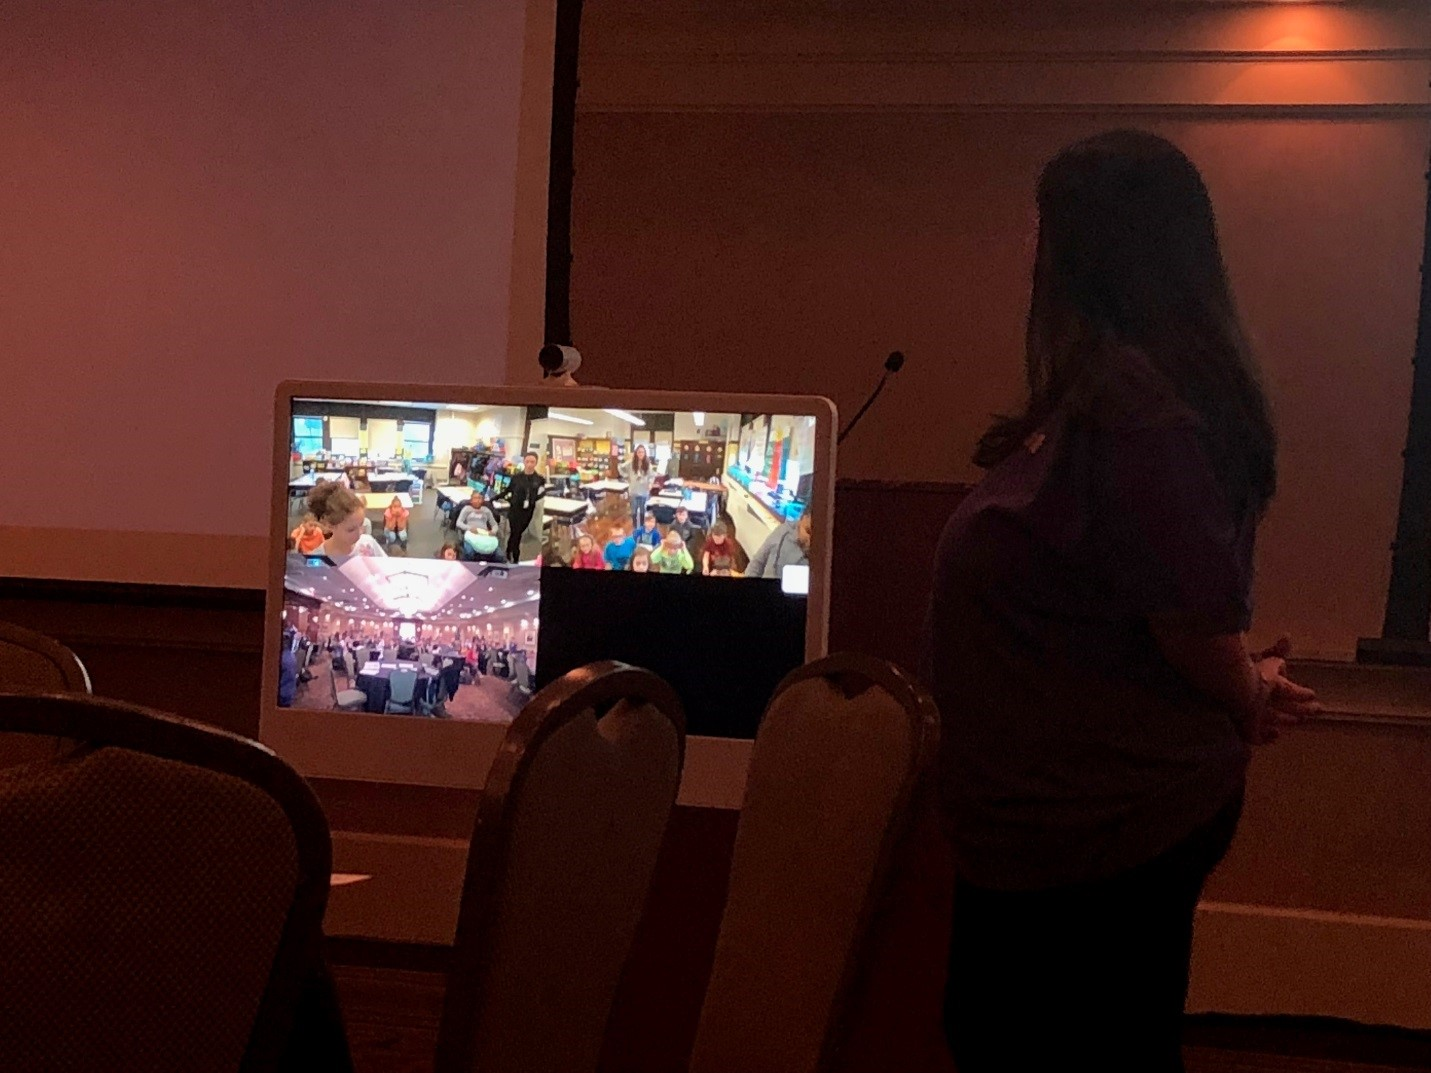 Sheevers connecting with two classrooms at TCSD through video conferencing at the NERIC conference